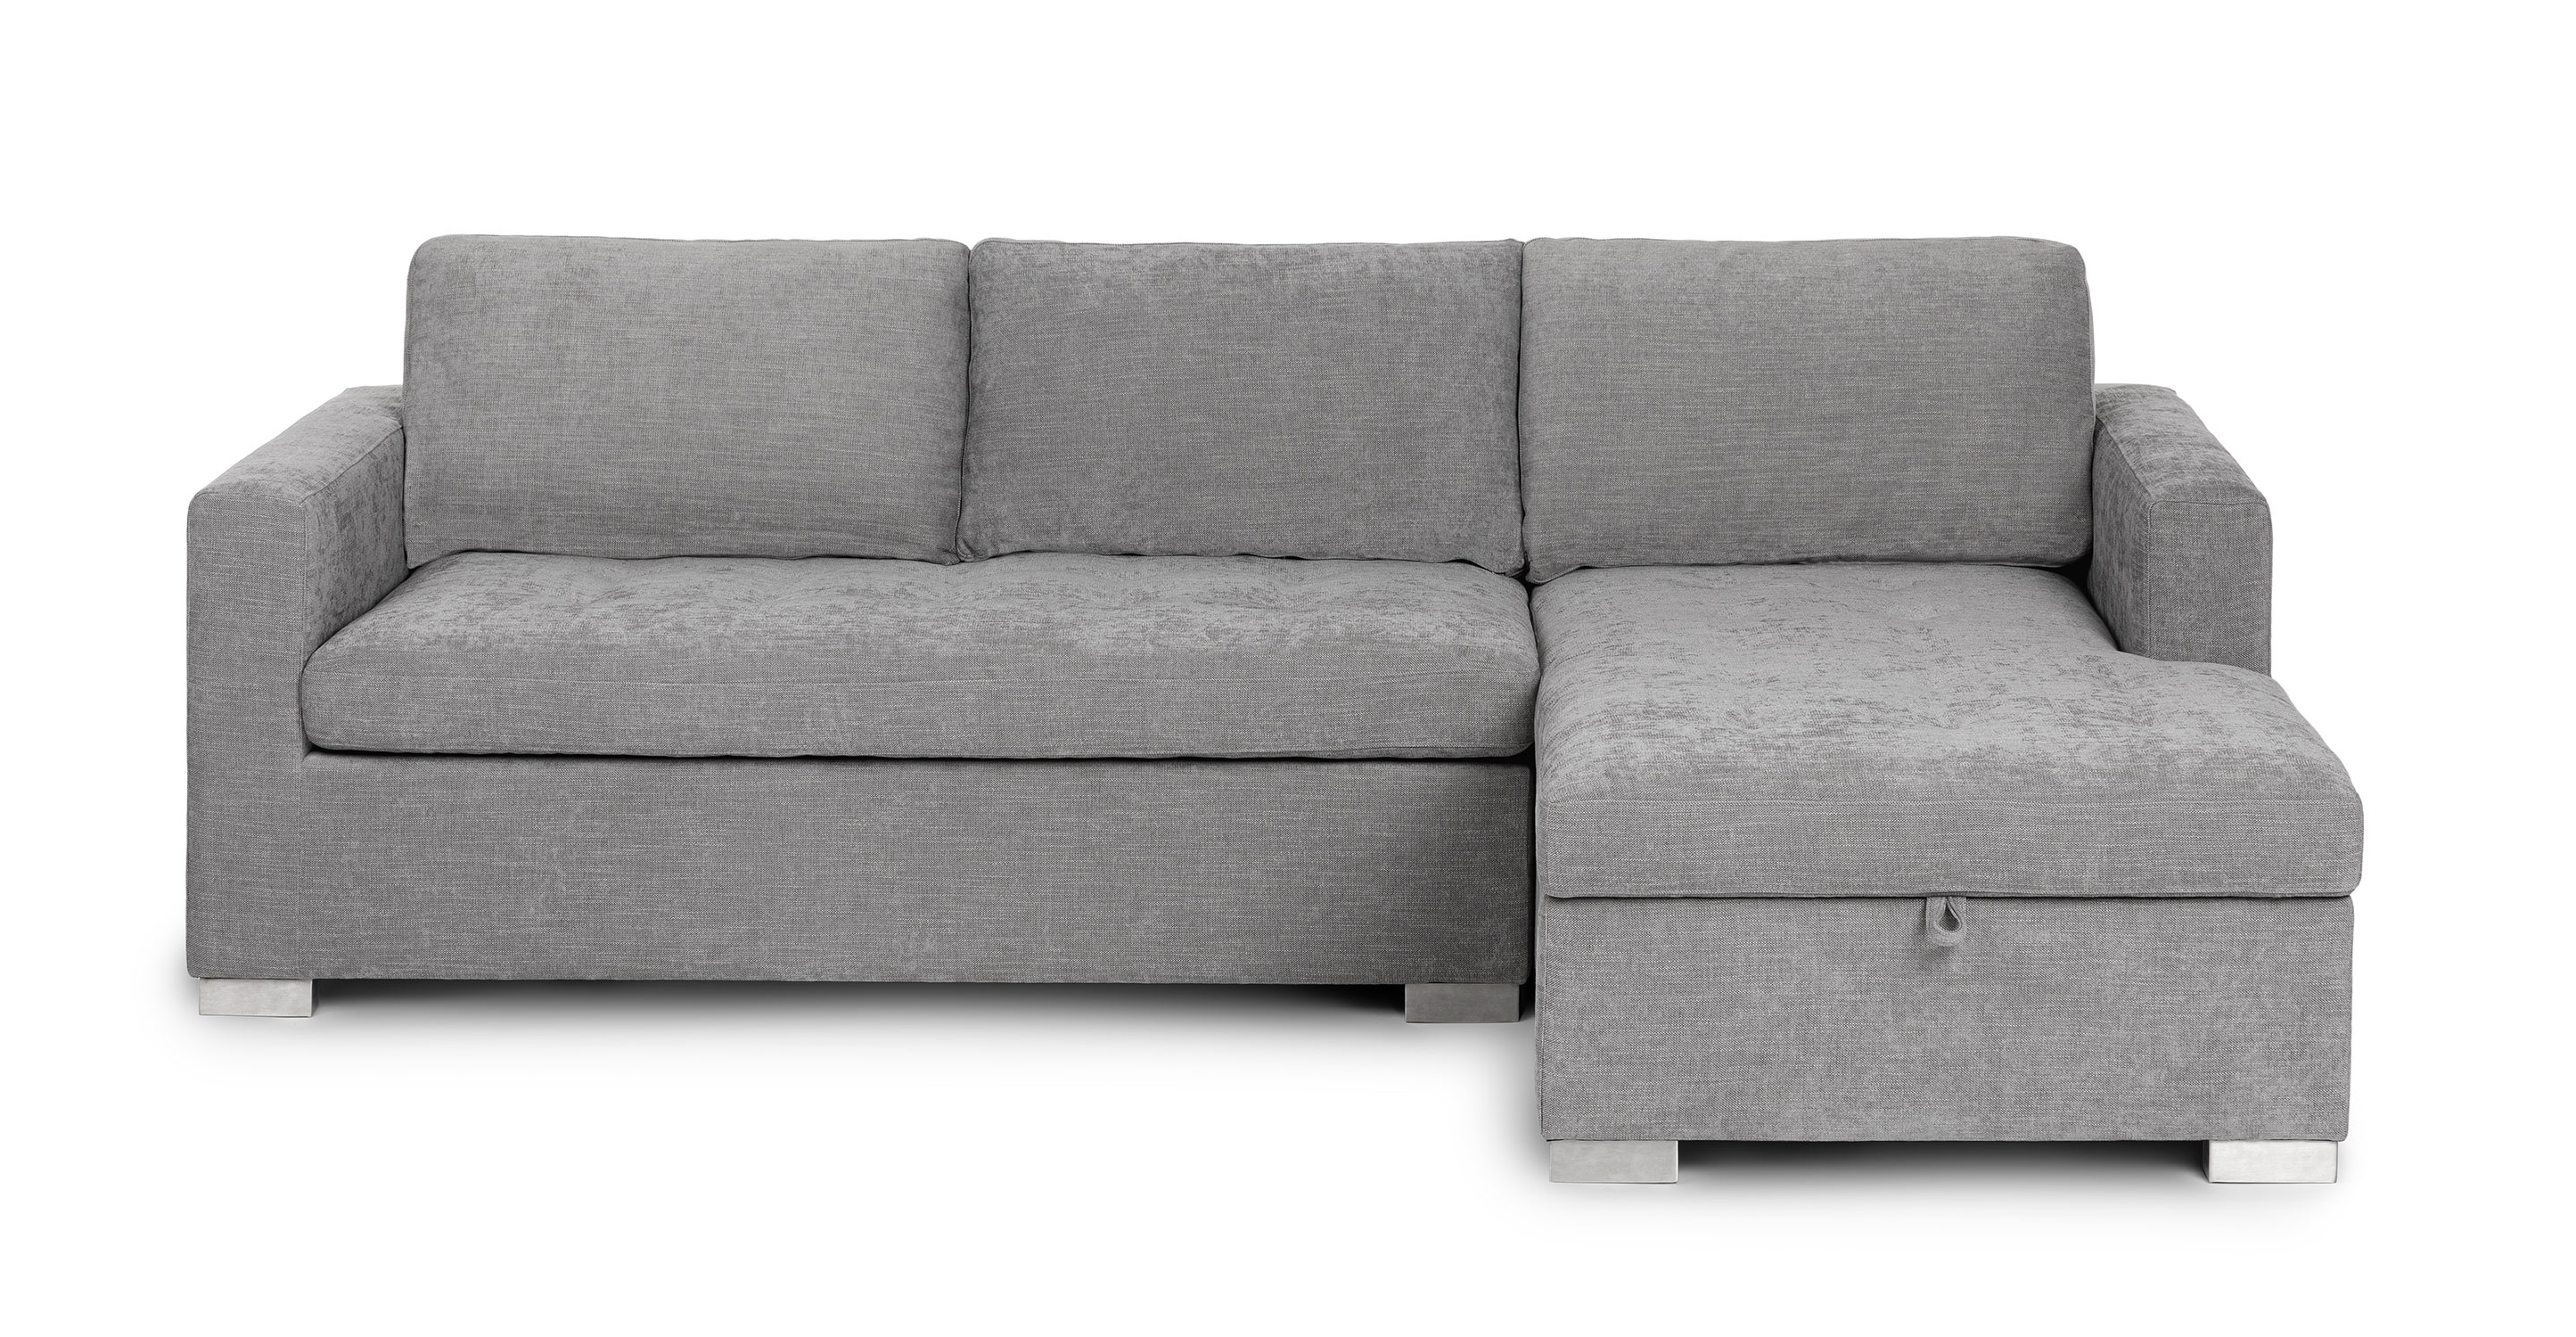 Dawn Gray Fabric Sectional Sofa Bed, How To Cover A Sleeper Sofa